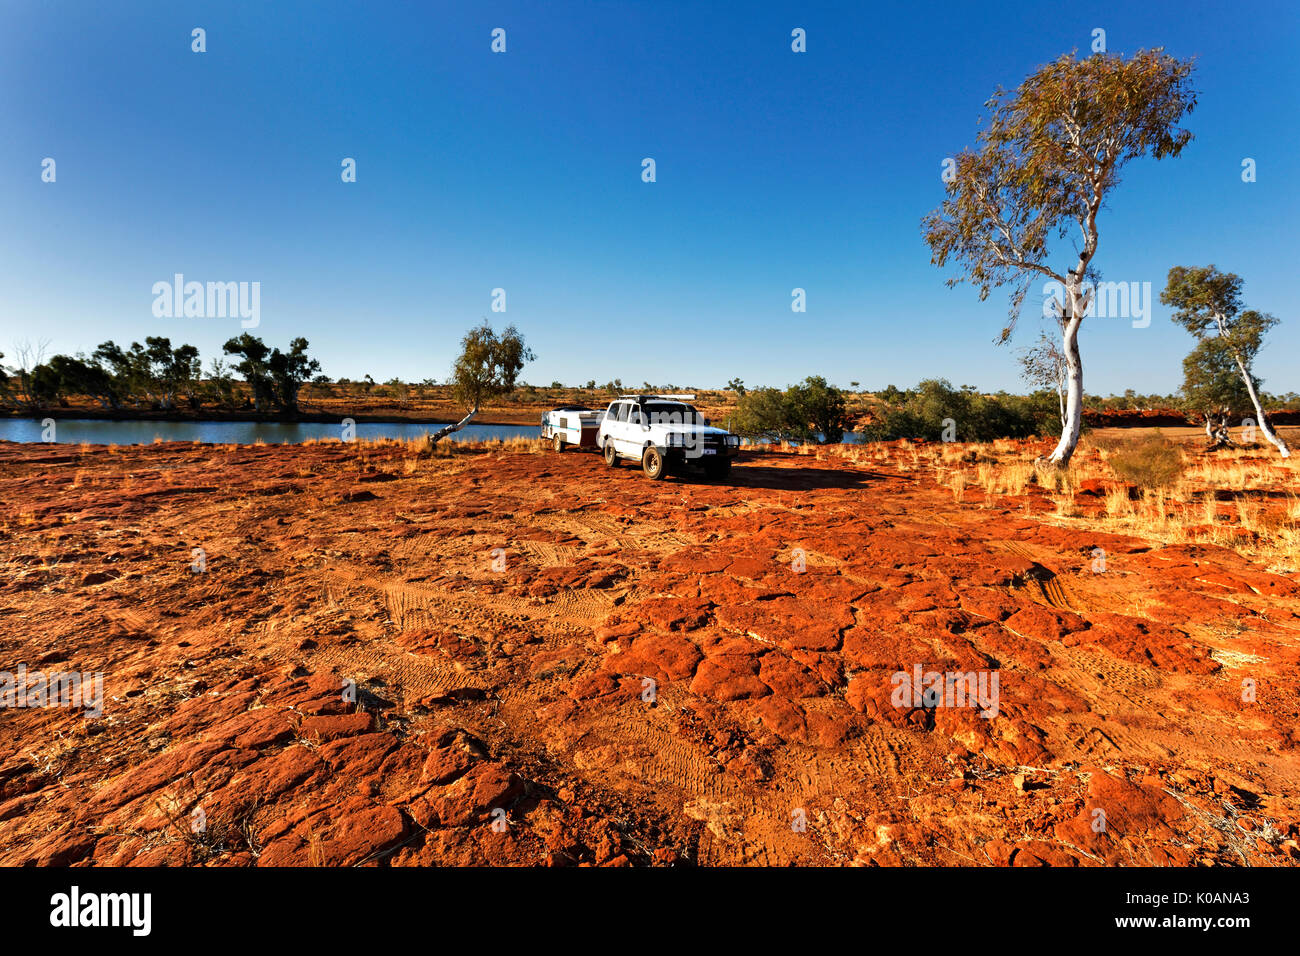 Rocky Pool with 4wd motor vehicle and camper,a section of the Gascoyne River that never becomes dry, Gascoyne, Western Australia - Stock Image